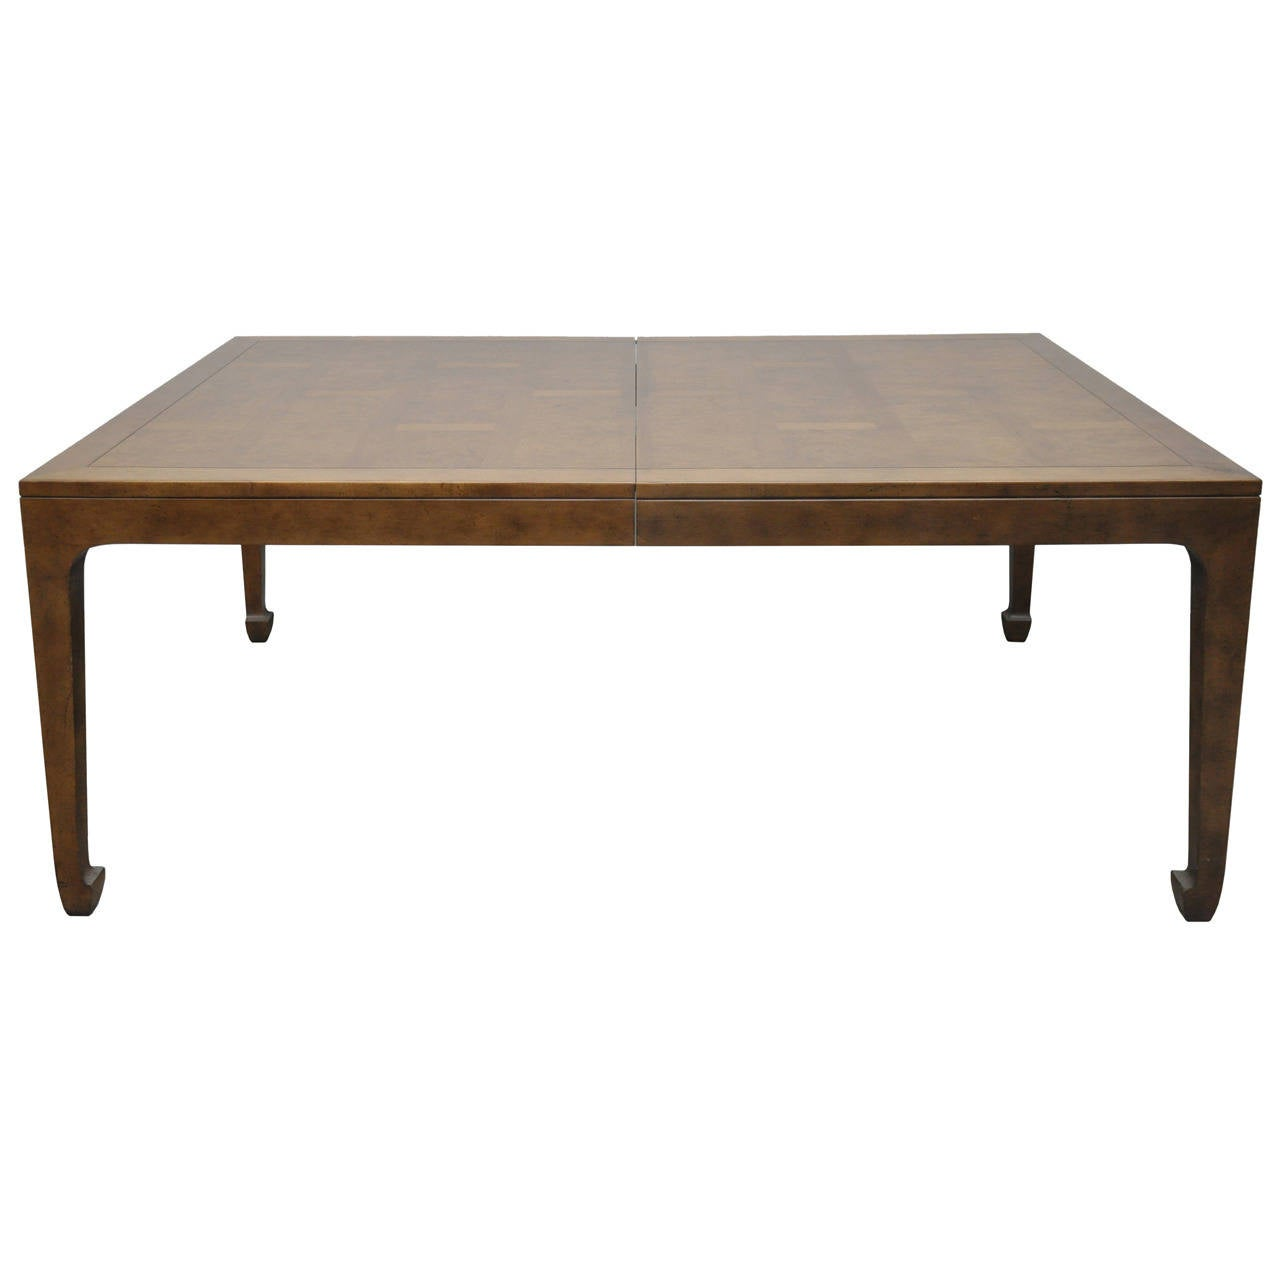 baker furniture asian style mid century dining table w 3